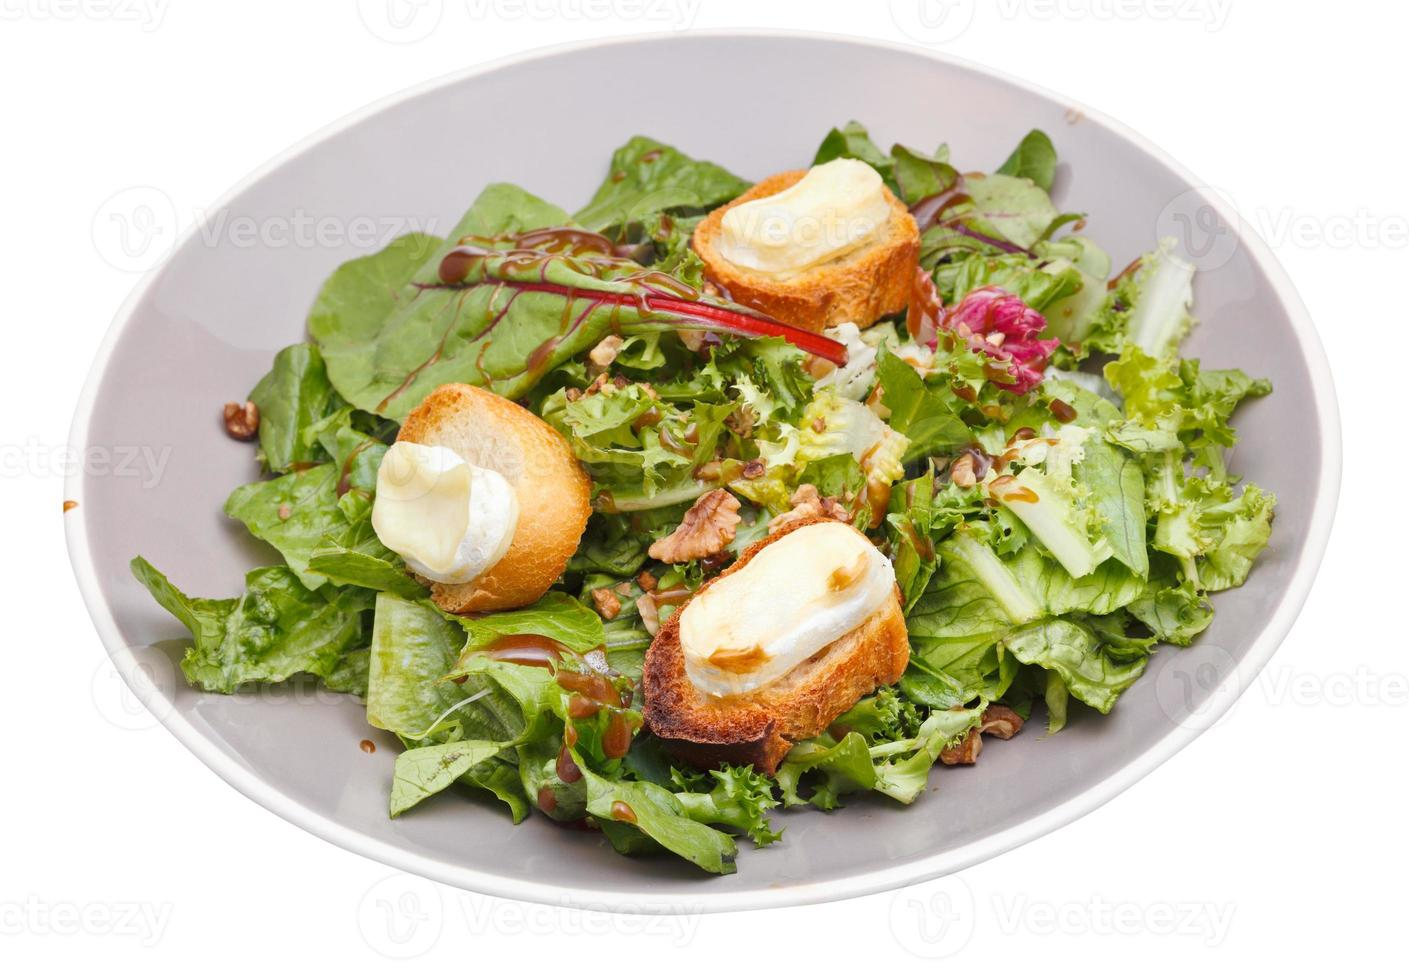 green salad with goat cheese and croutons photo